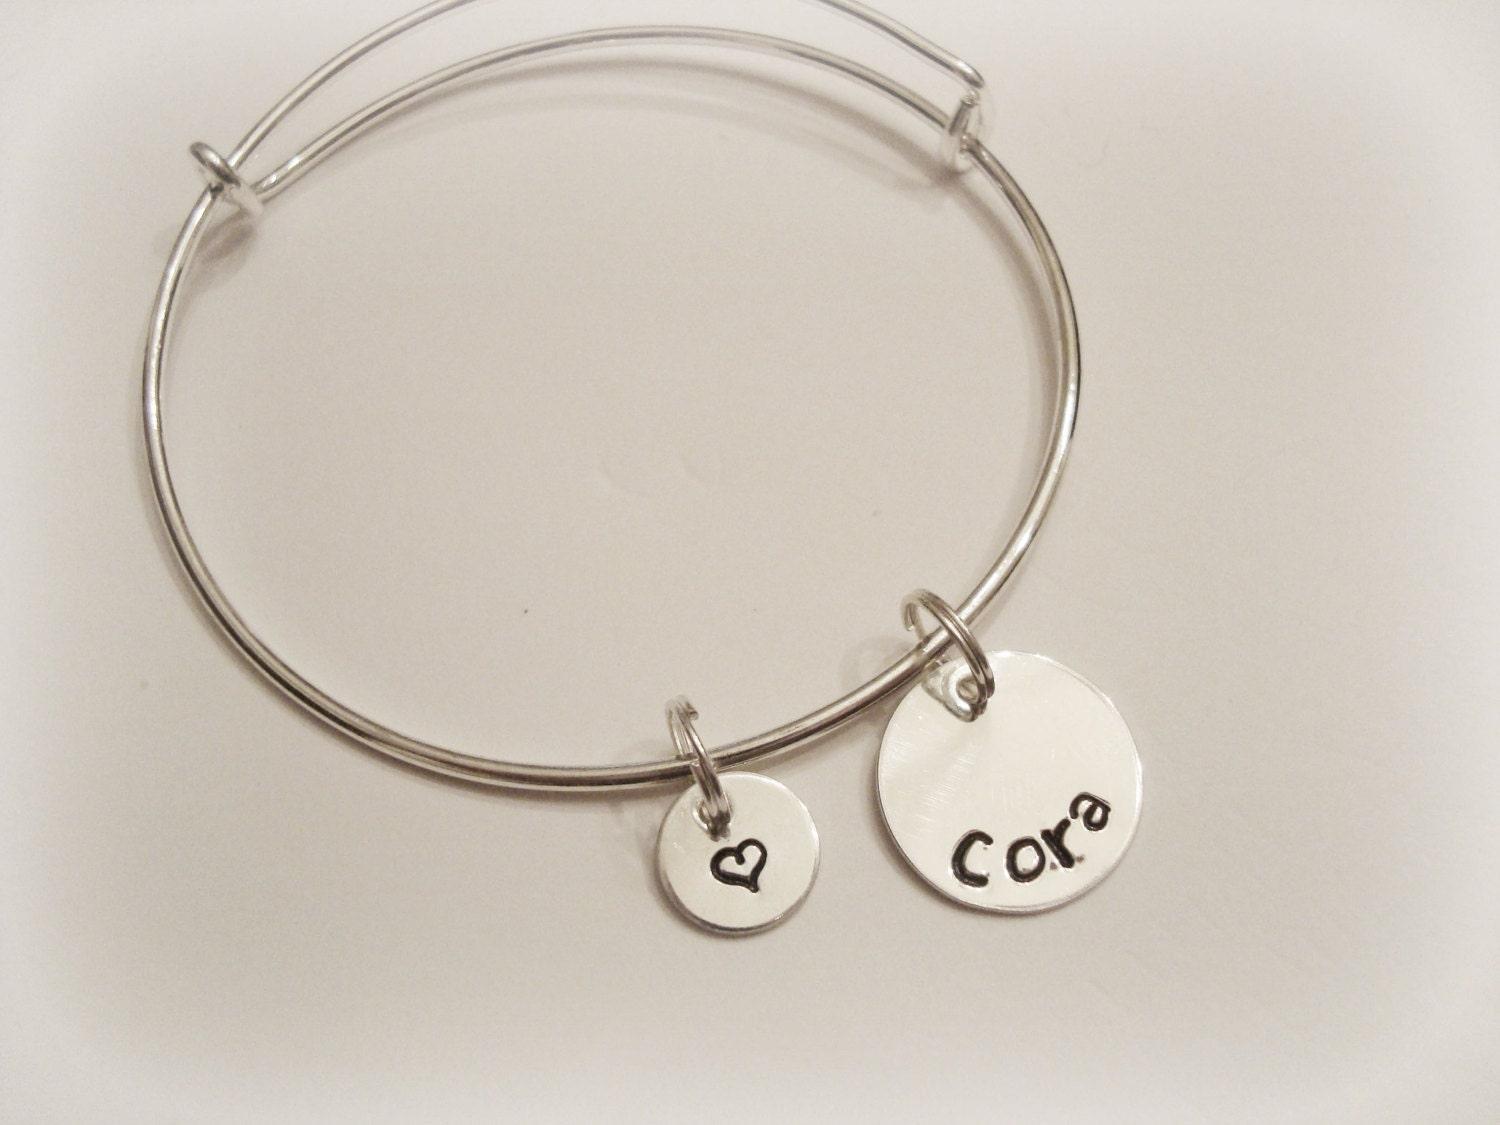 Two Sterling Silver Discs on Silver Plated Adjustable Bangle Bracelet